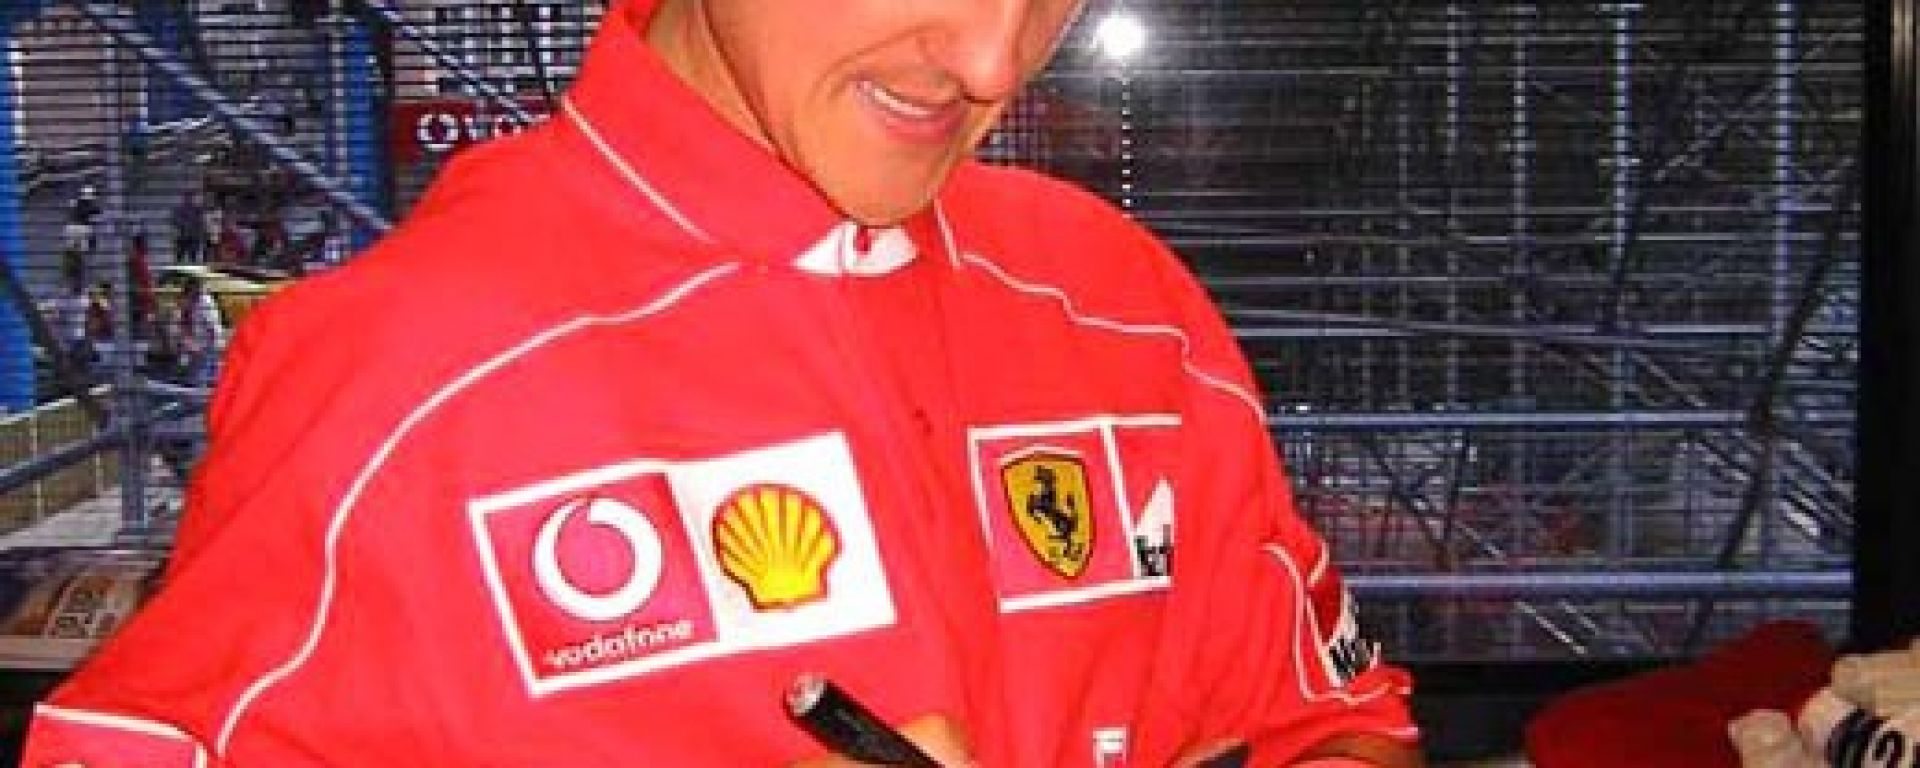 Un po' di Schumi all'asta